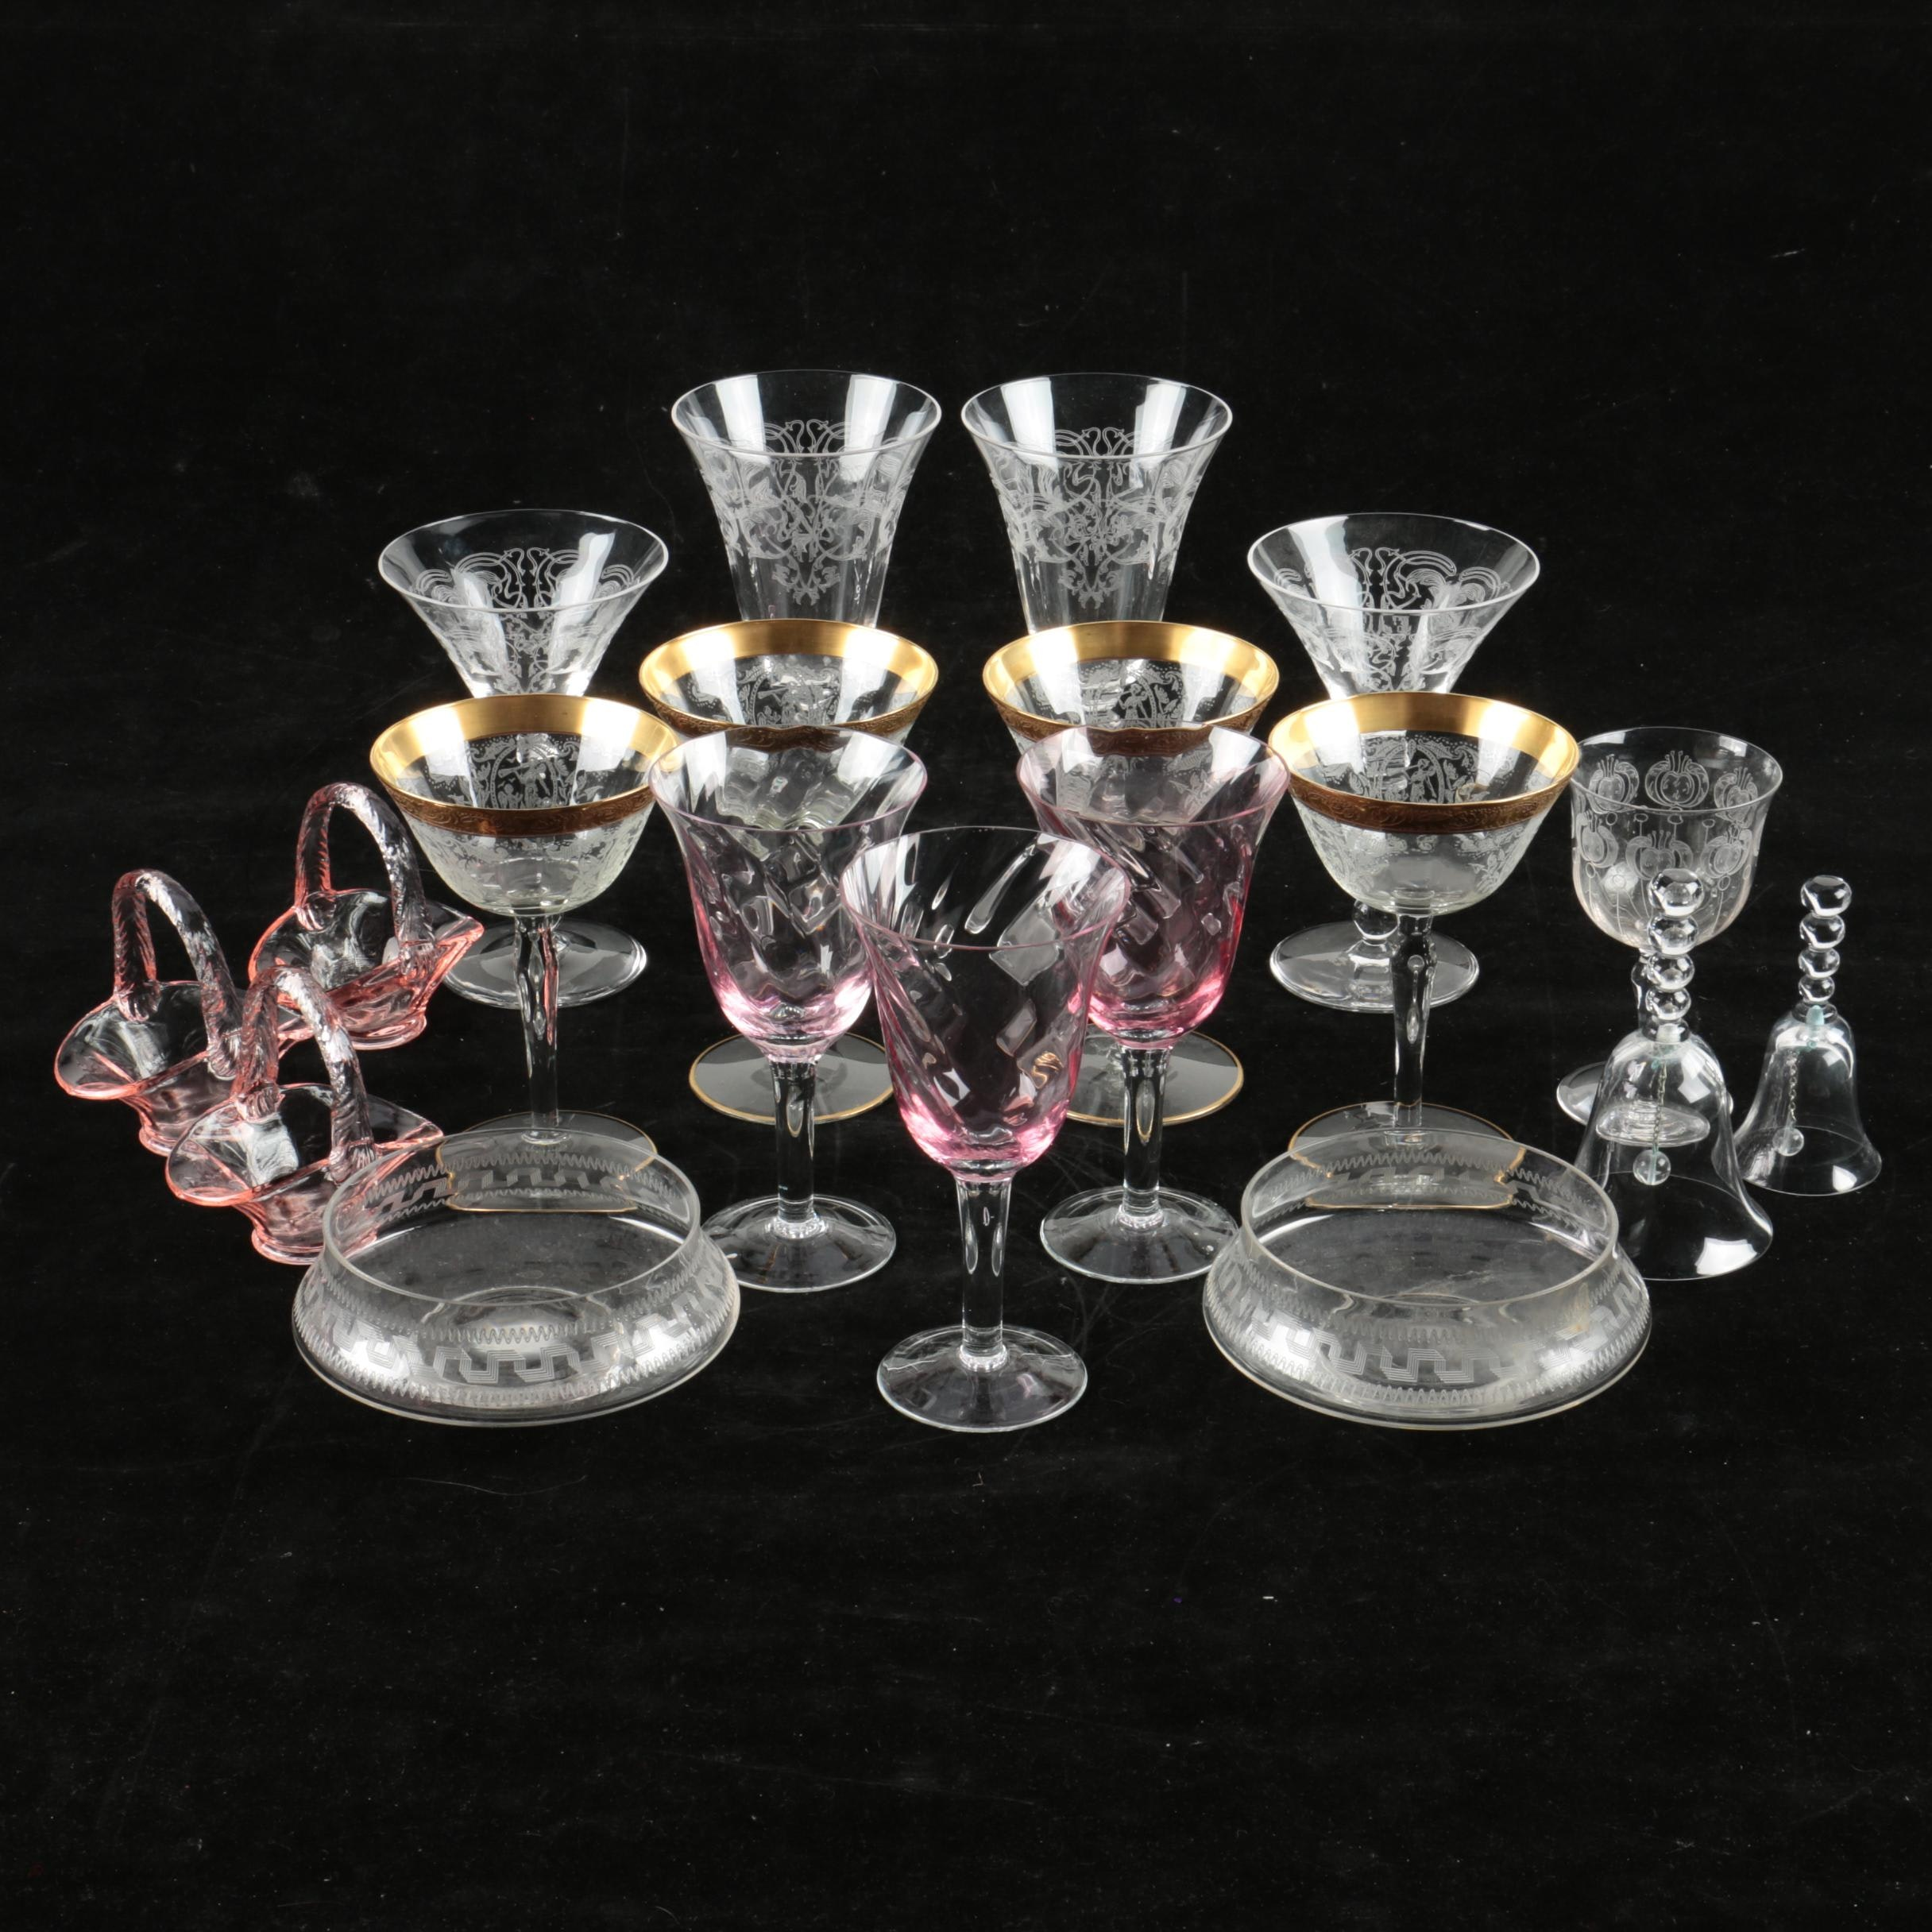 Etched Stemware, Tableware and Decor